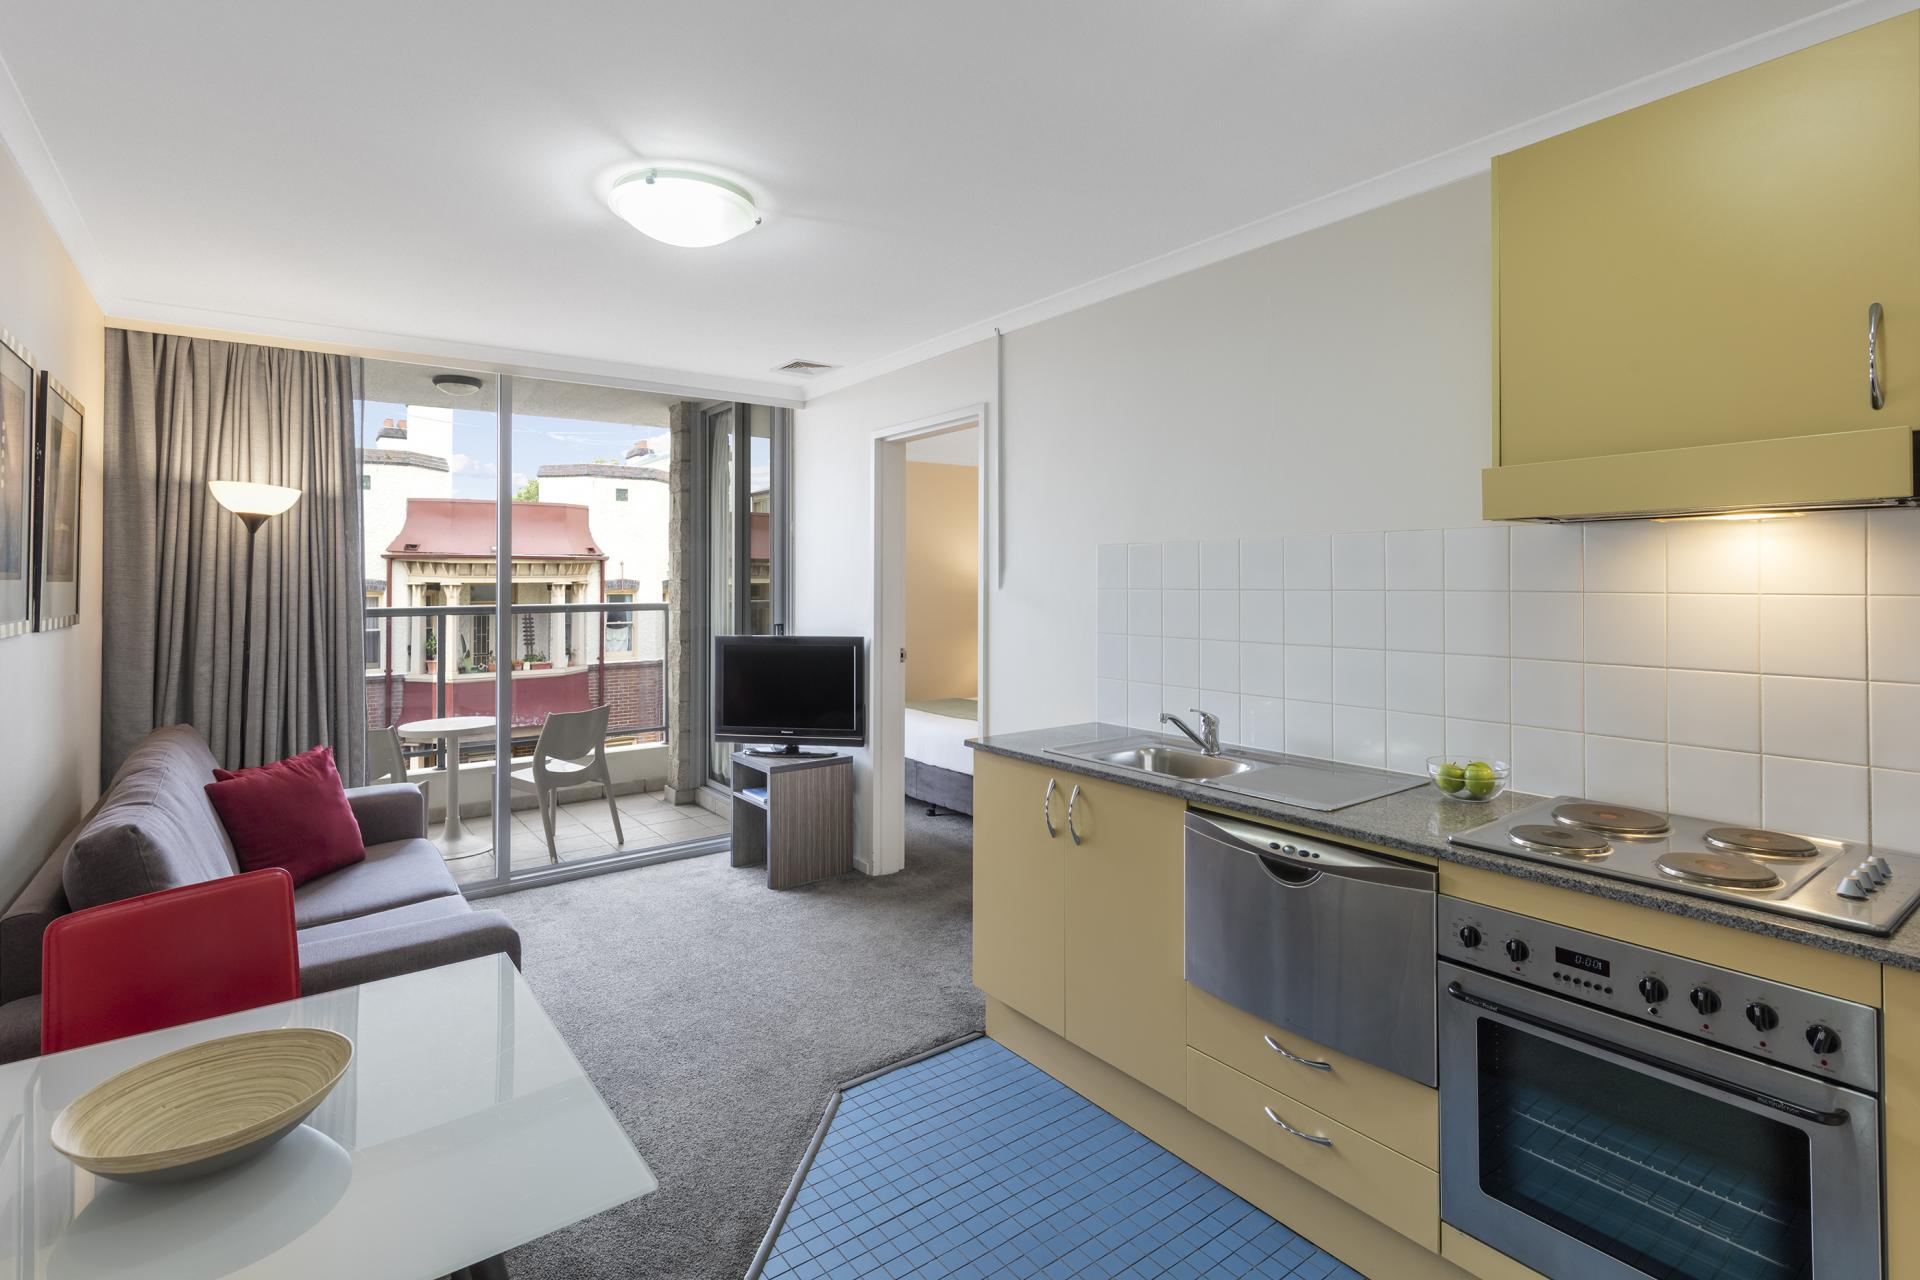 Equipped kitchen at Nesuto Chippendale Apartment Hotel, Chippendale, Sydney